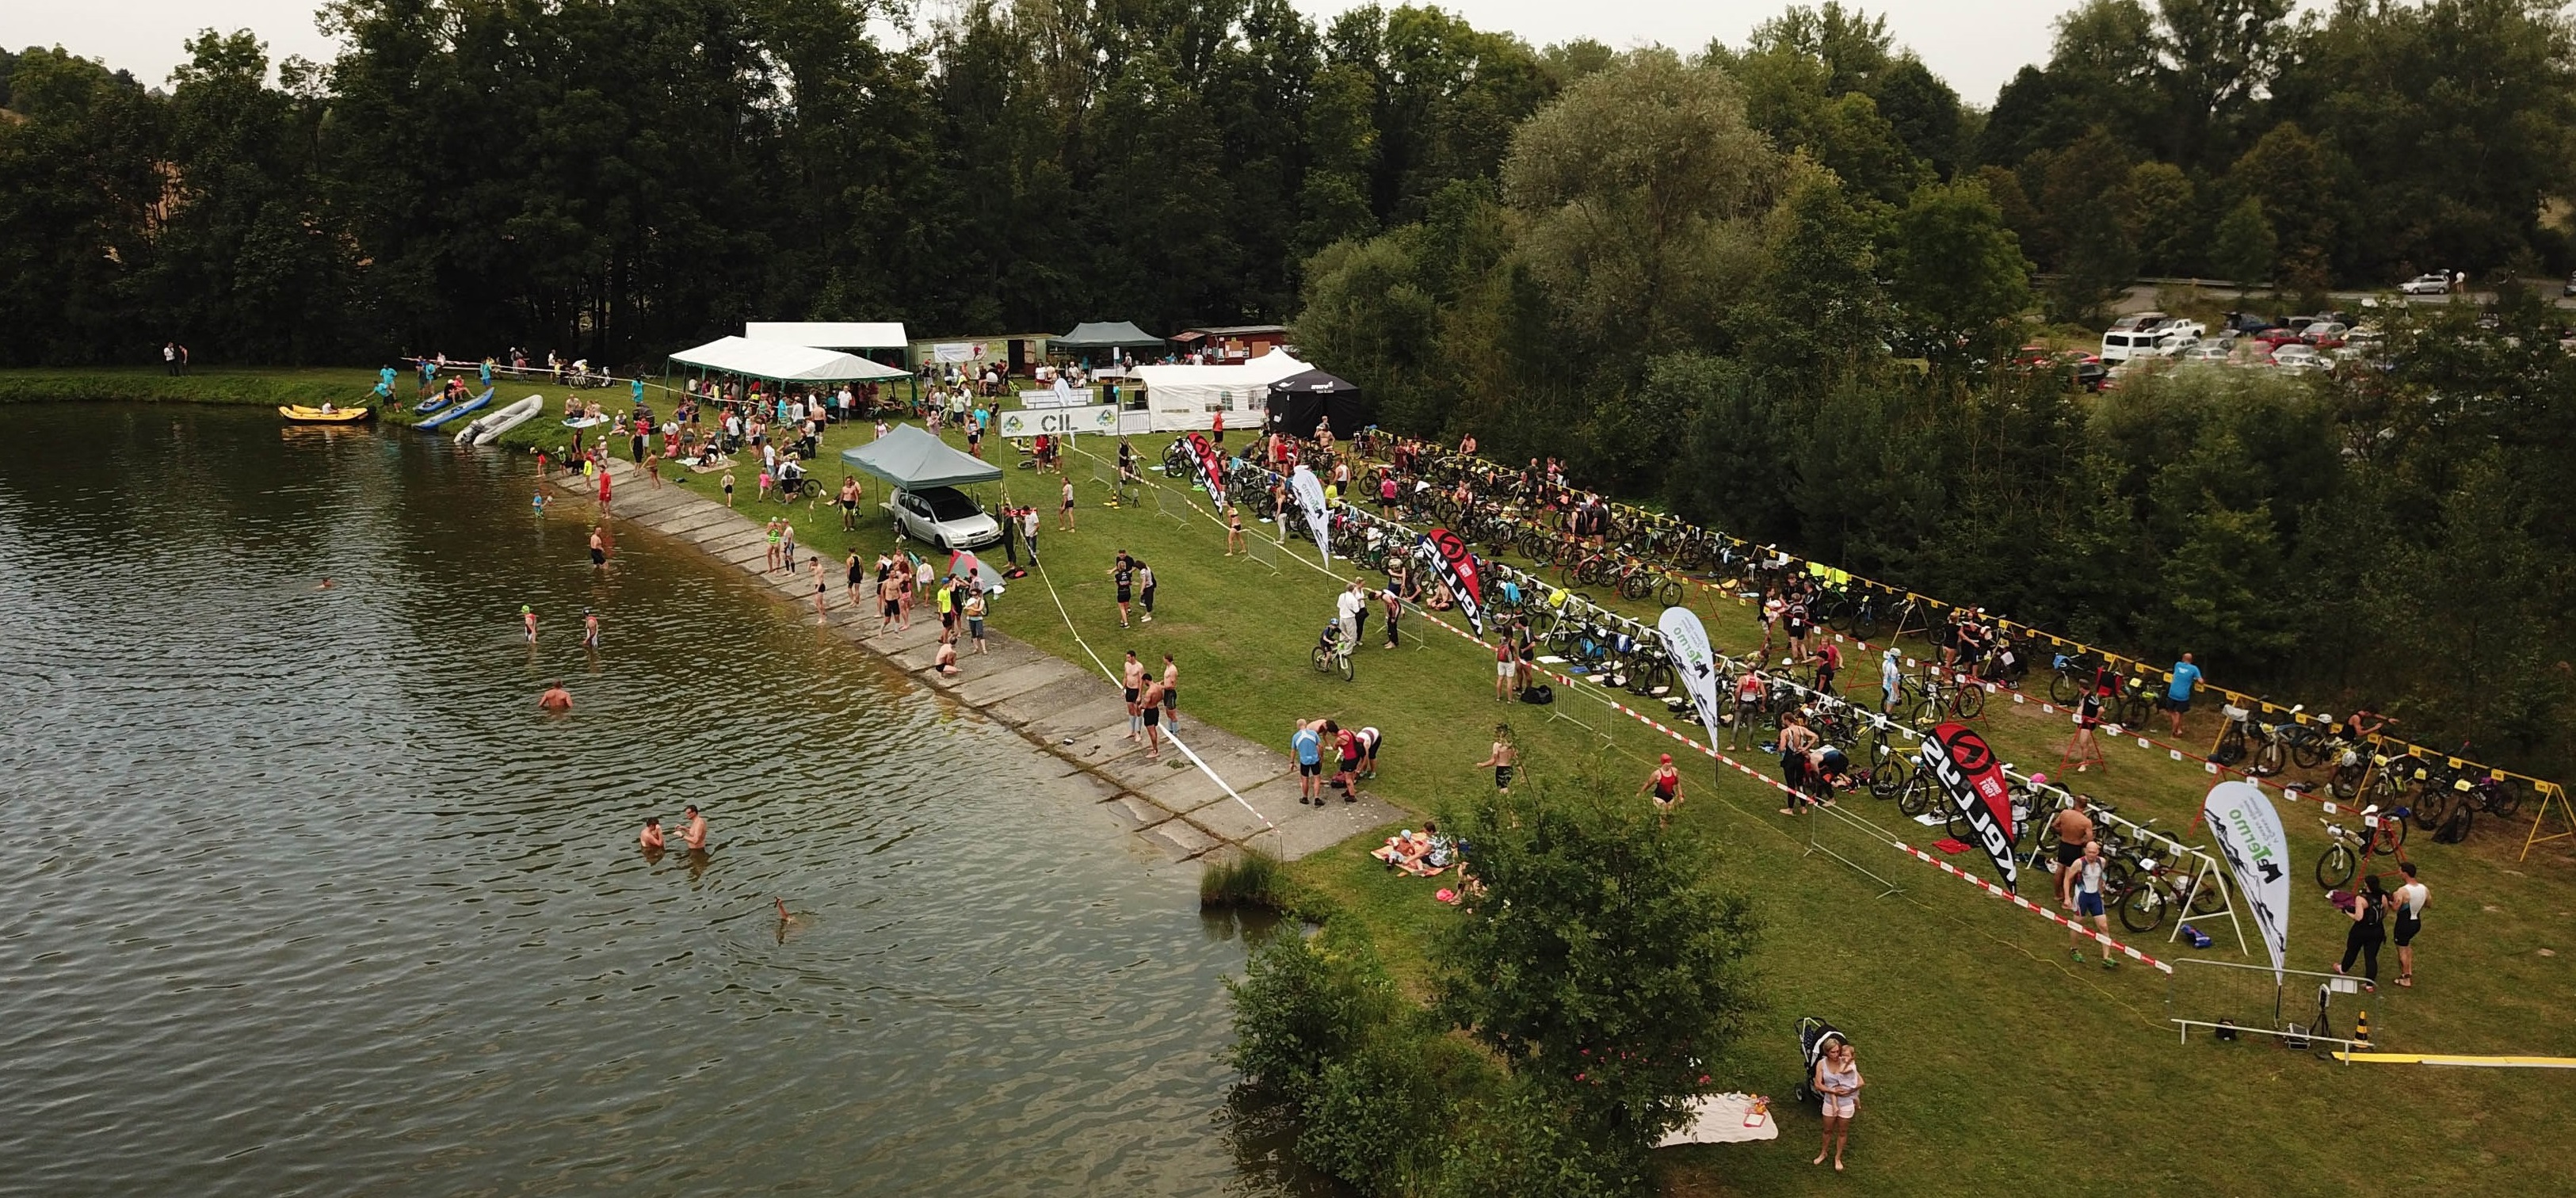 Kelečský triatlon